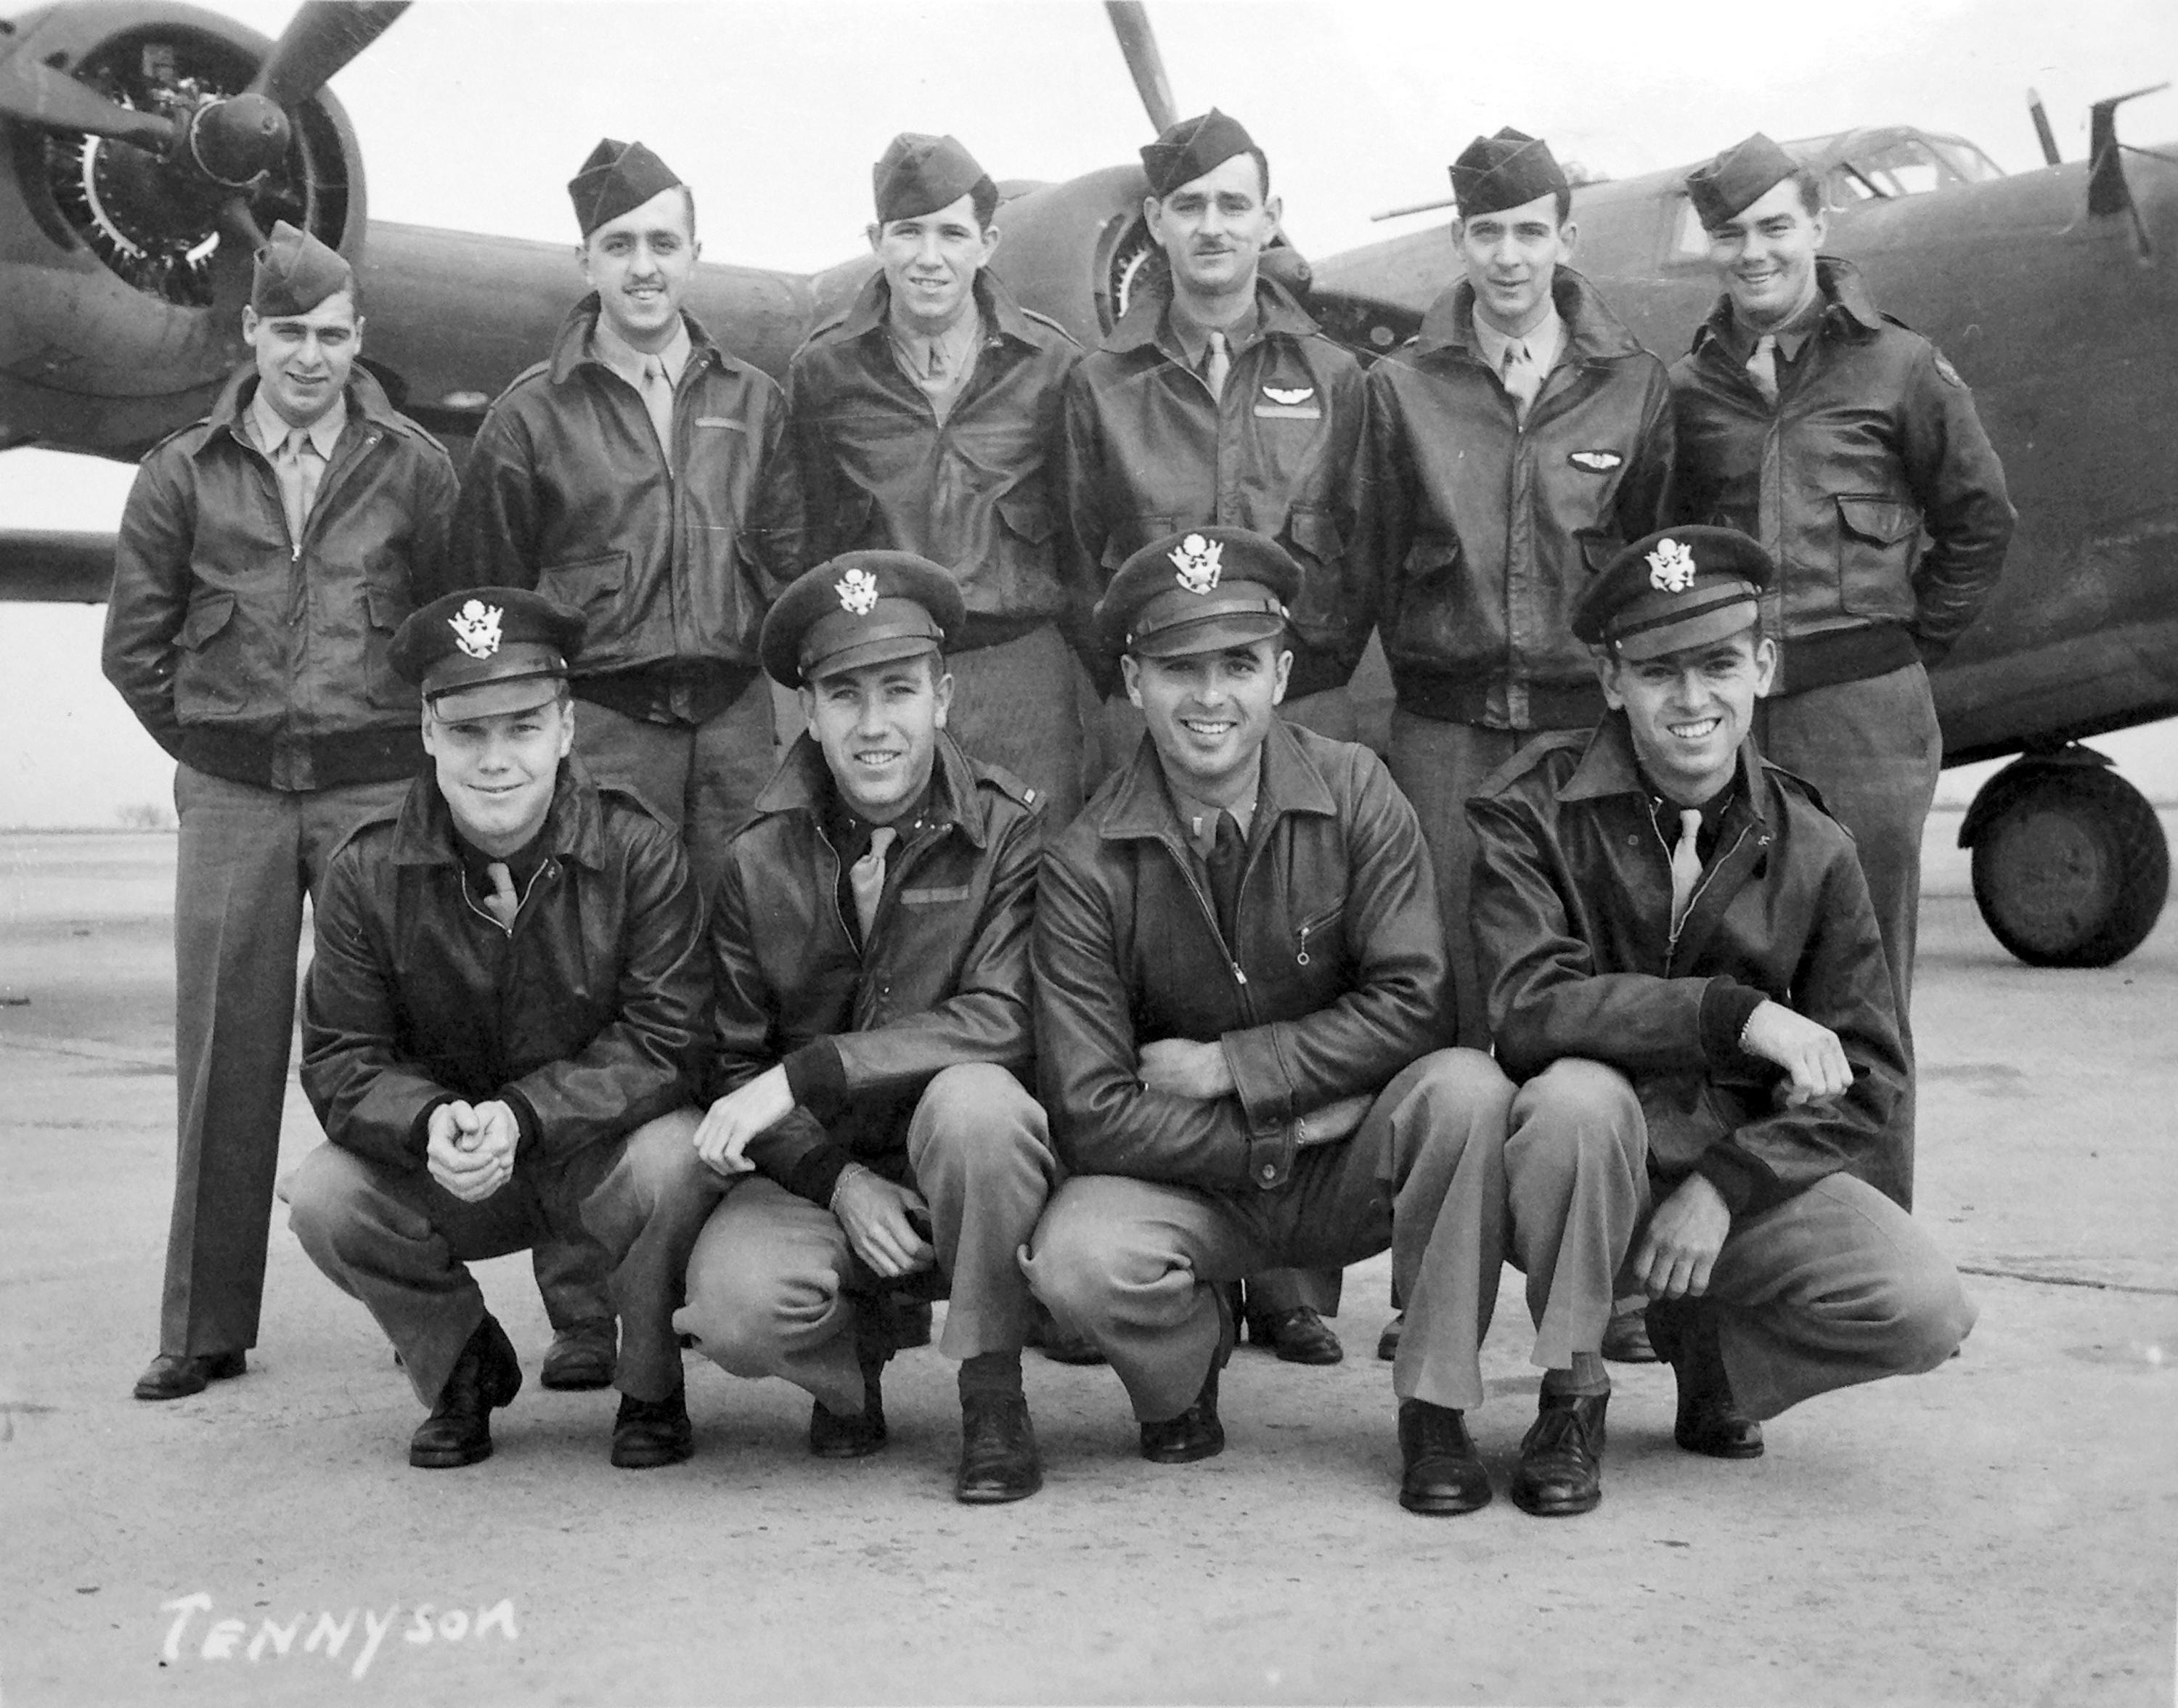 This circa 1943 U.S. Army Air Force photo from the Kelly Family Research Project shows Lt. Tom Kelly, lower right, and other members of his crew of the B-24 bomber training in the U.S., that was later shot down in Hansa Bay in what is now Papua New Guinea during World War II. When Kelly's relatives got word that his bomber had been found, a wave of exhilaration mixed with grief washed over family members. Although relatives who never met Kelly had pieced much of his life story together over the years, they never knew what happened when his plane was shot down off the coast of Papua New Guinea in 1944. They got their answer recently when the group Project Recover found the B-24 bomber under 213 feet of water. (U.S. Army Air Force/Kelly Family Research Project via AP)